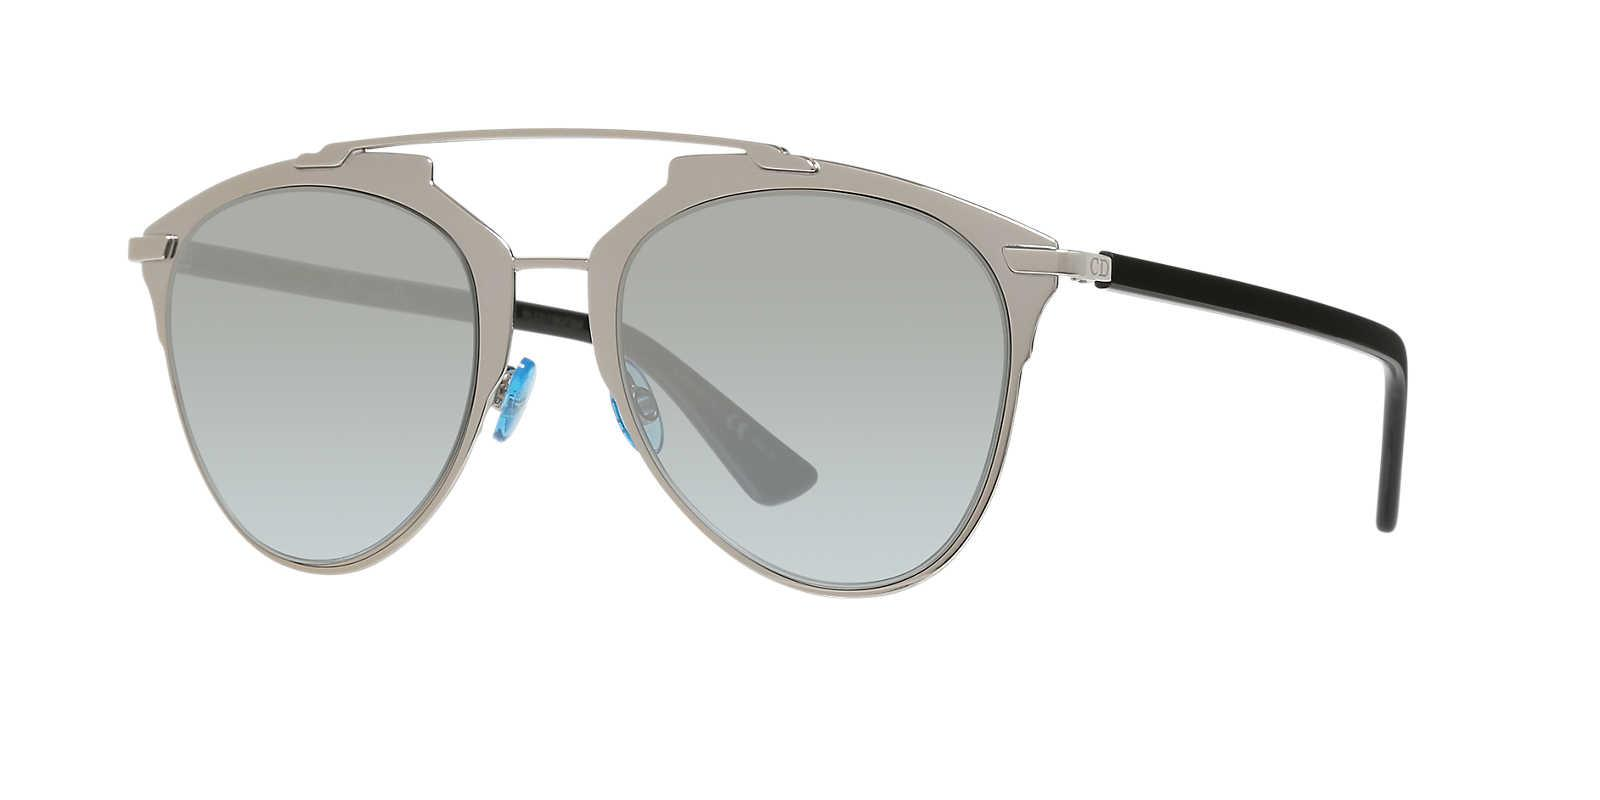 cddac169bc9d Dior Unisex Sunglass Reflected s 52 in Blue - Lyst